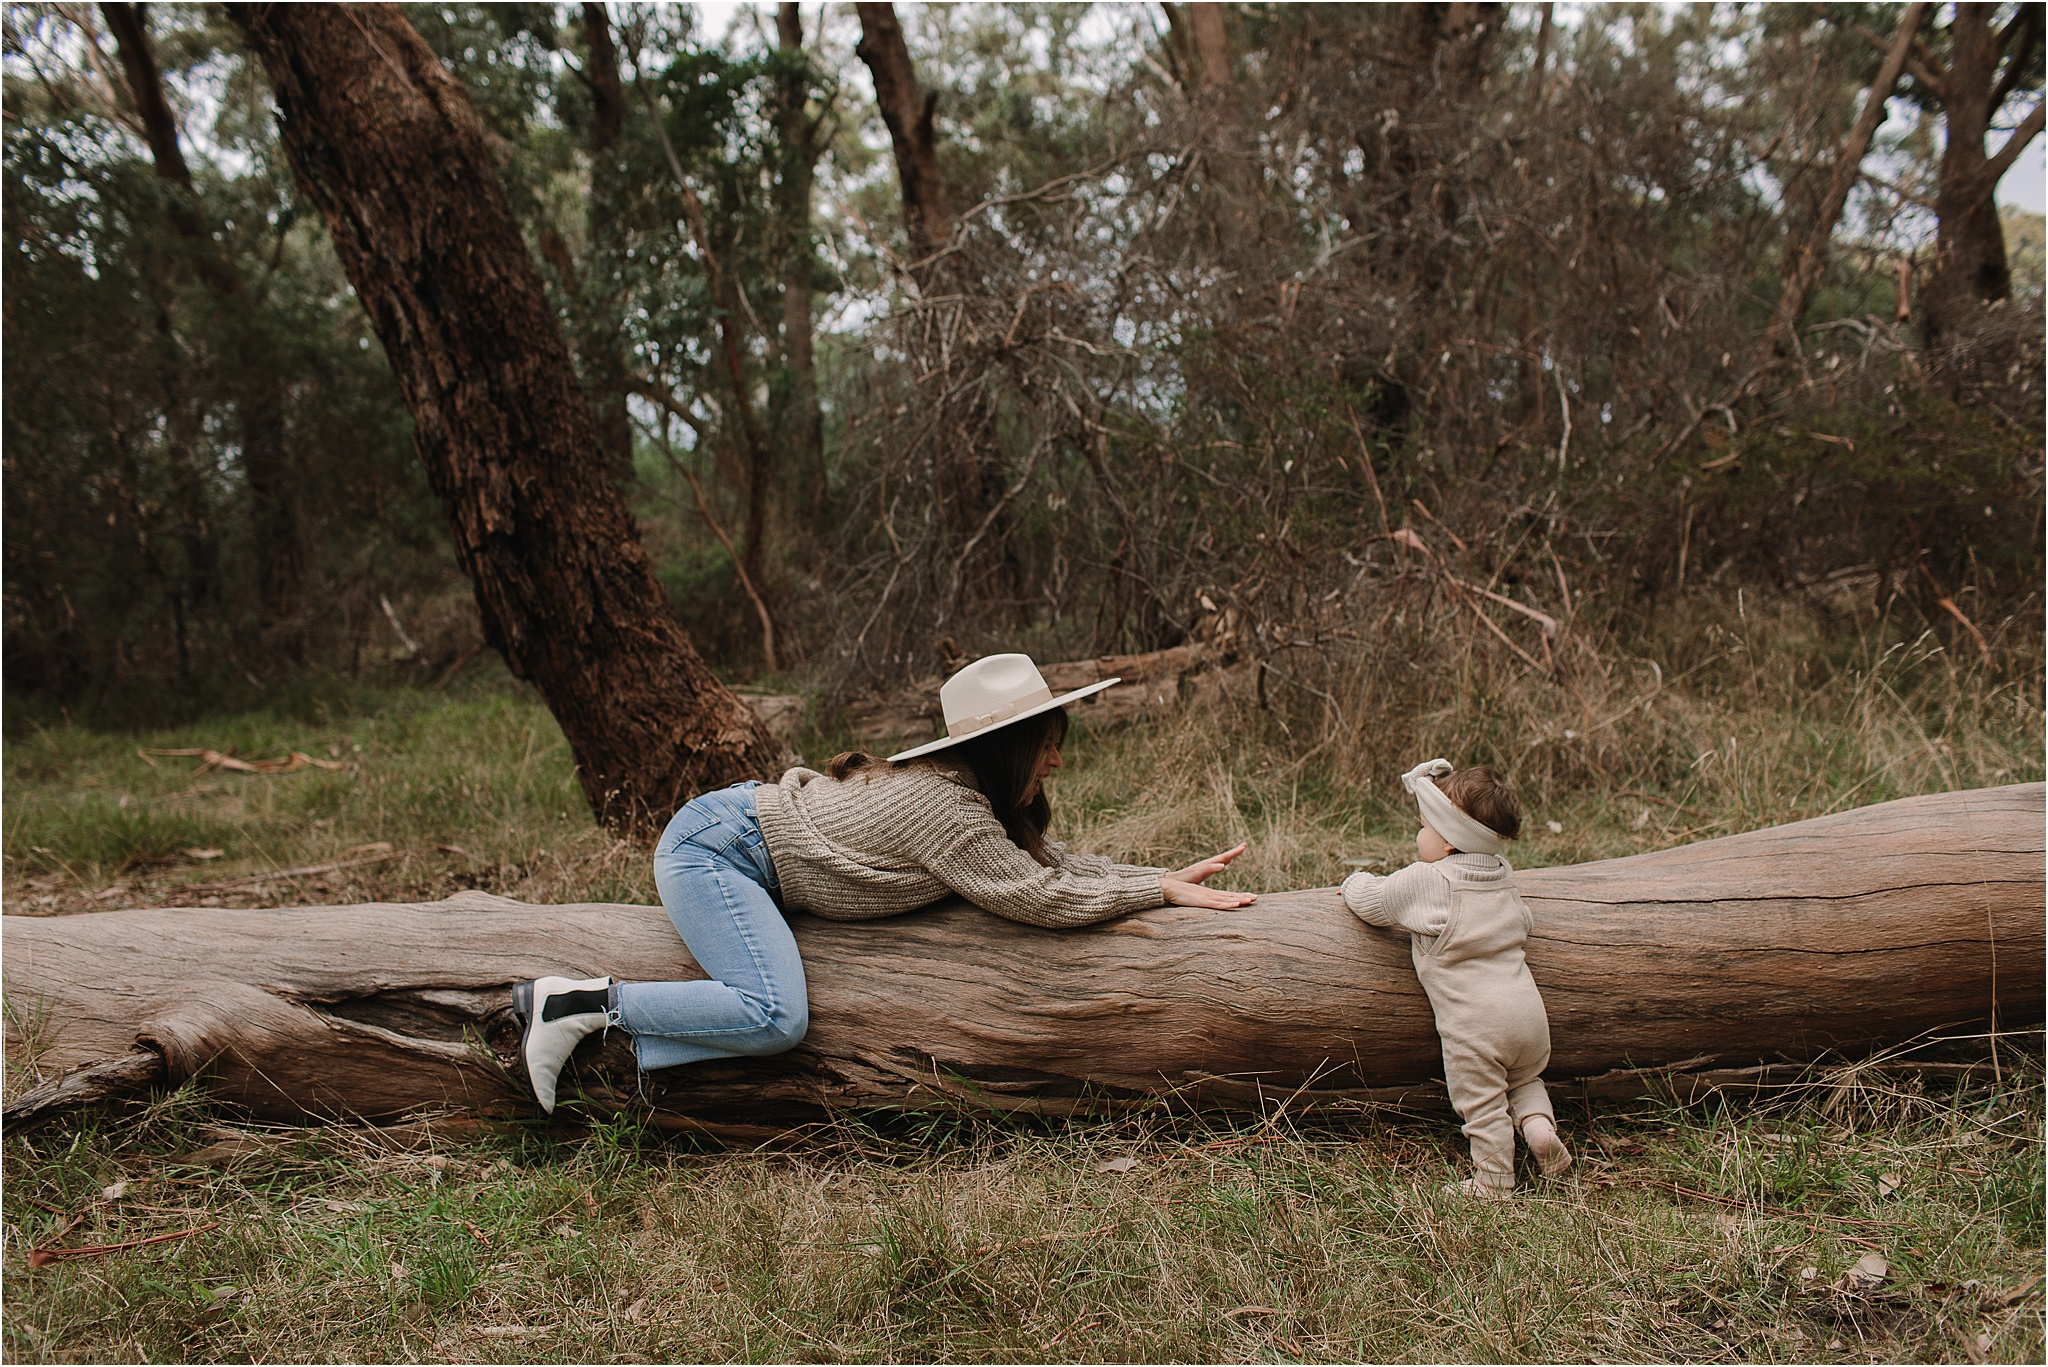 Mum having fun with toddler on a log in the bush